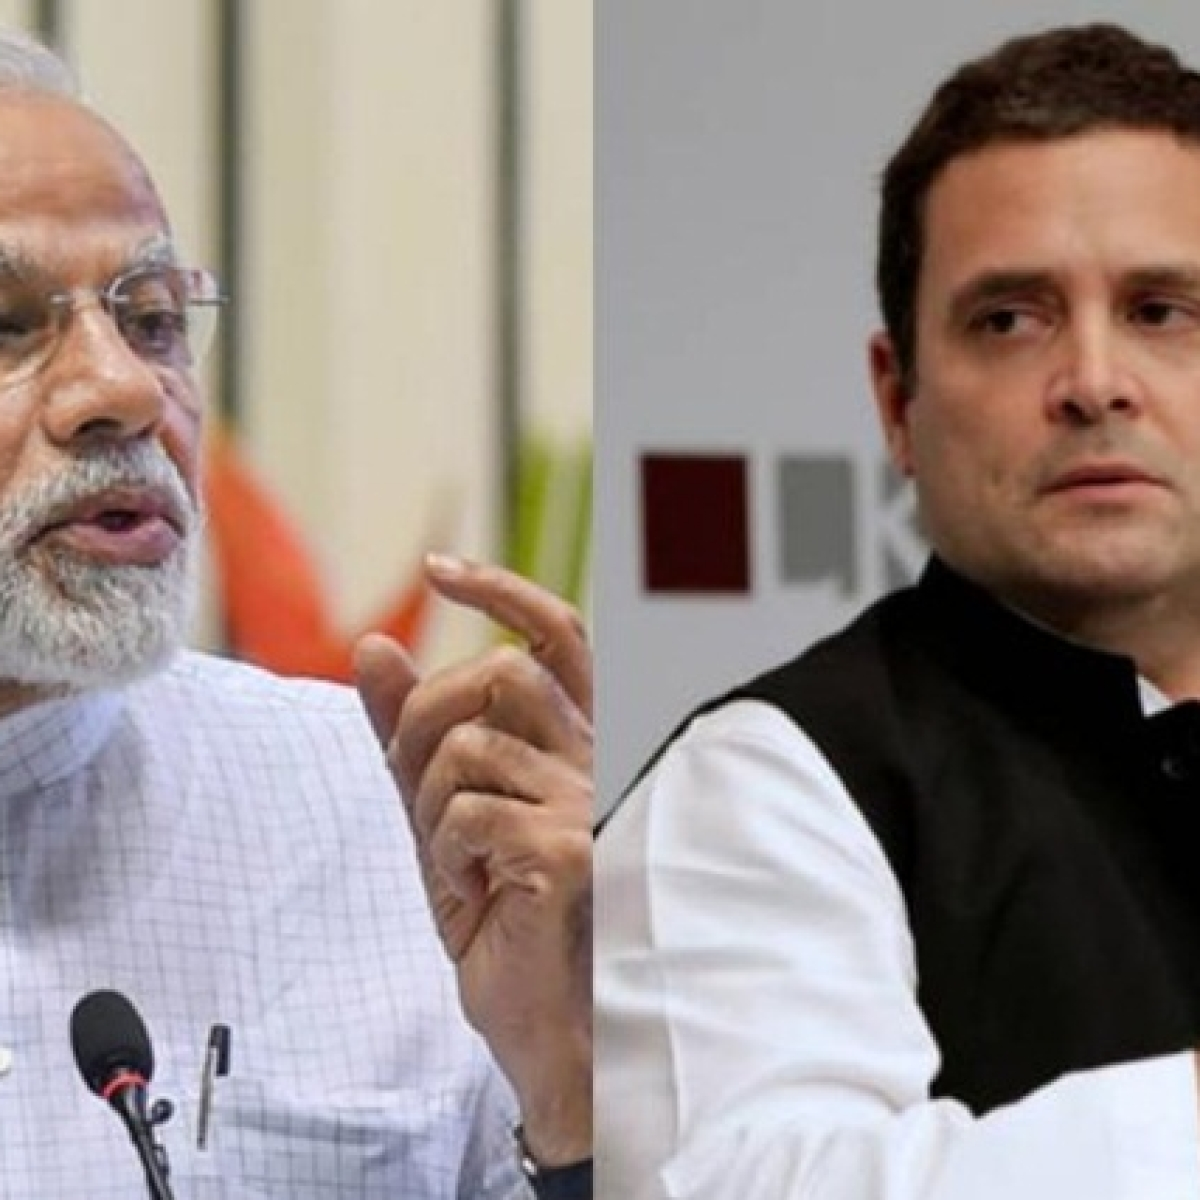 'I was speaking for last 30-40 minutes, but tubelight works slowly': PM Modi mocks Rahul Gandhi's intervention in Lok Sabha